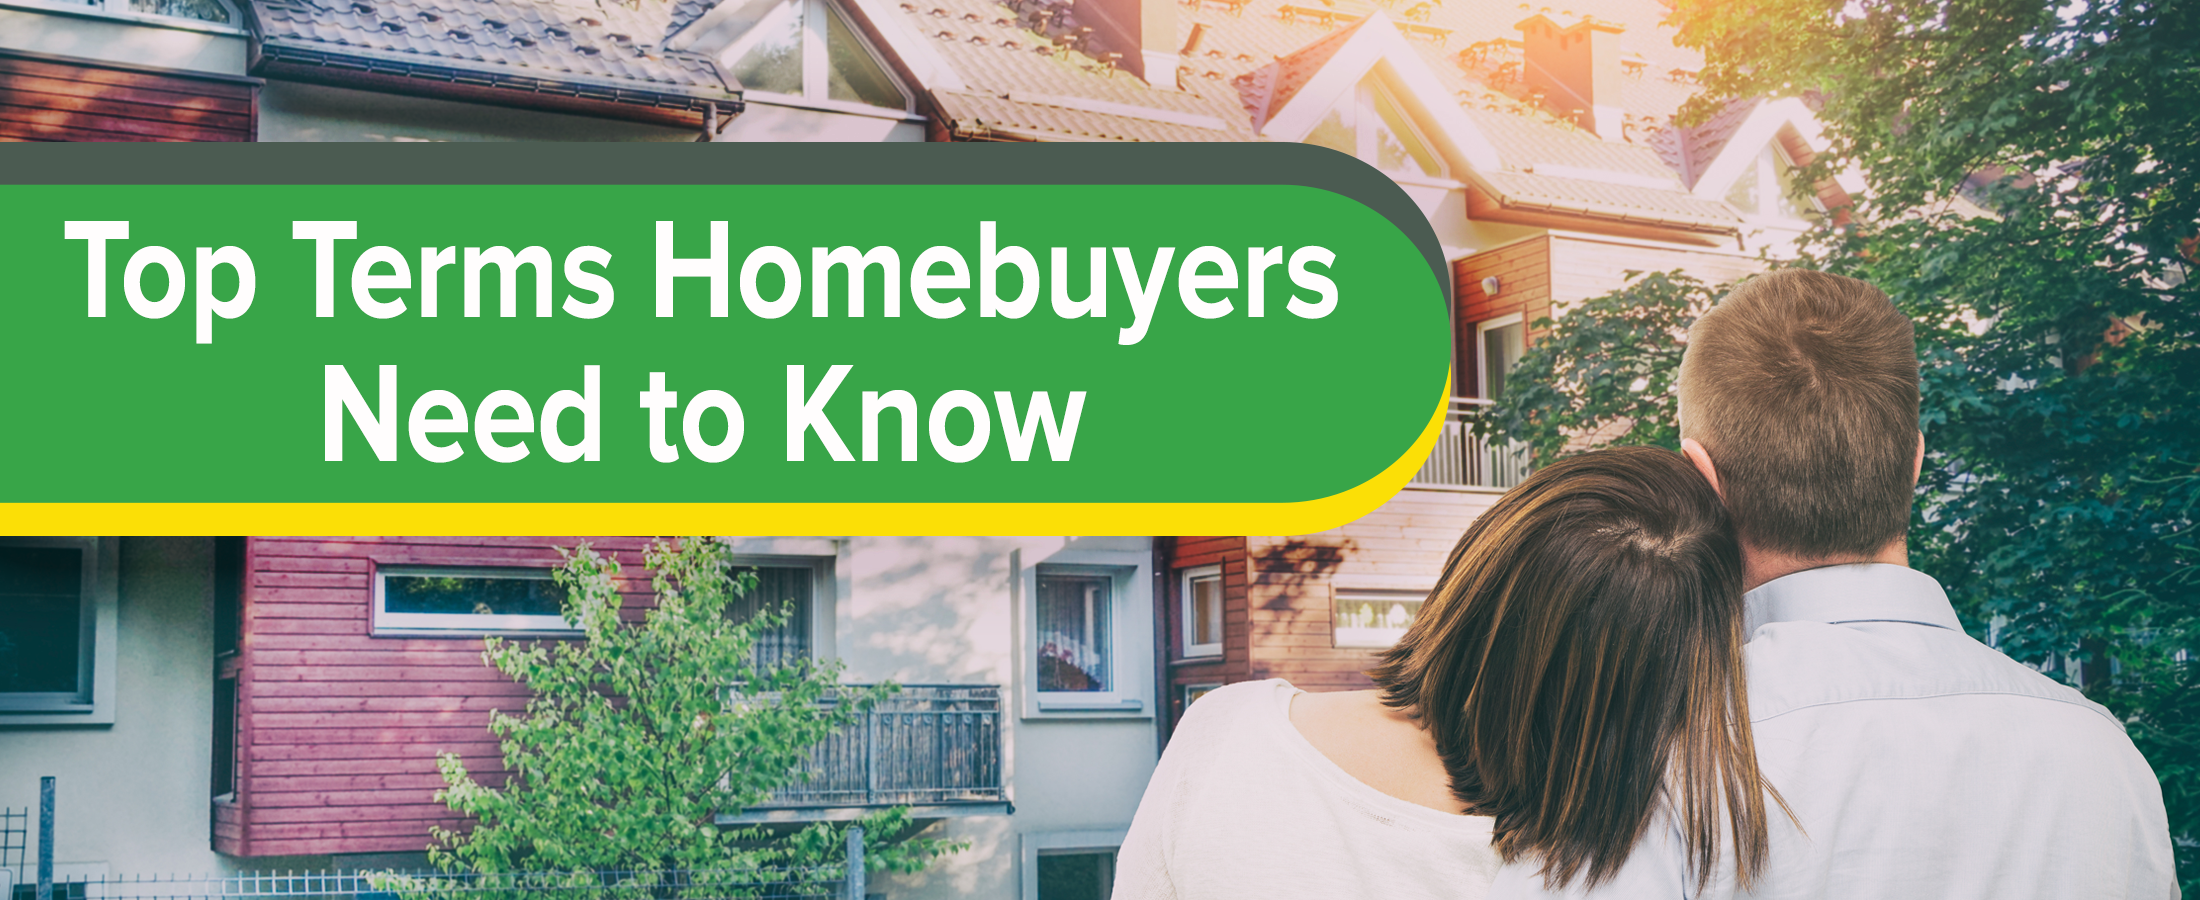 Top Terms Homebuyers Need to Know